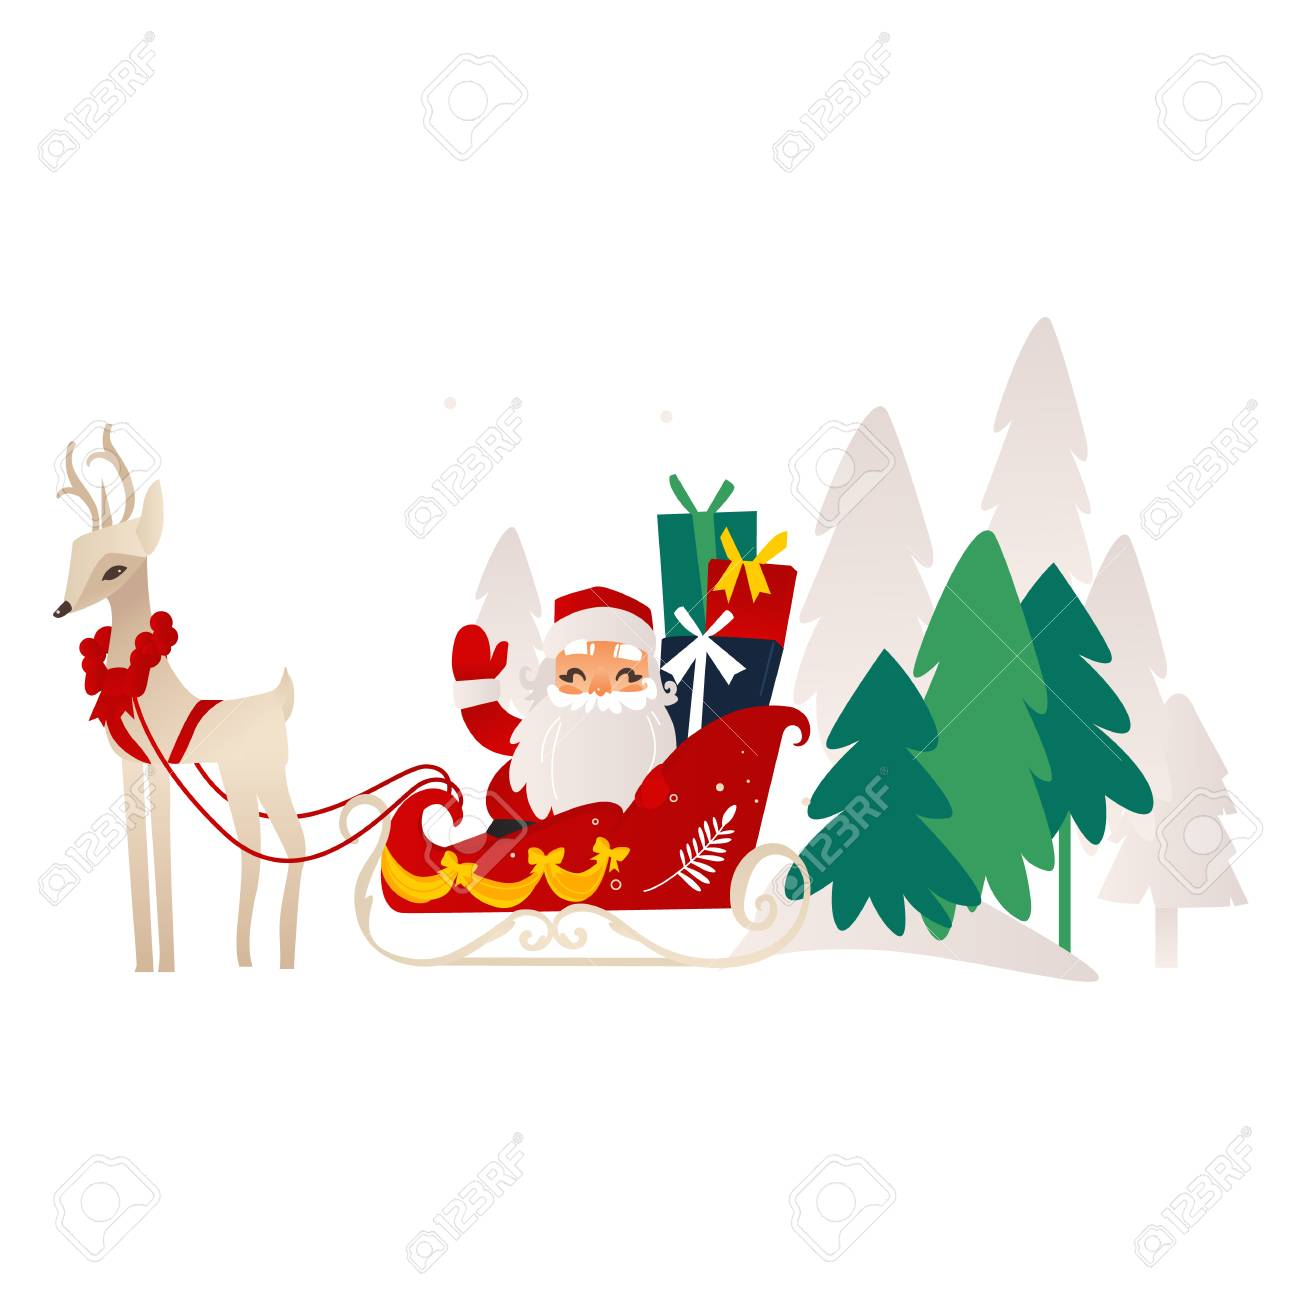 8587a1136 Vector - vector flat cartoon santa claus in christmas stockings and hat  sitting at decorated sleigh riding flying reindeer smiling.